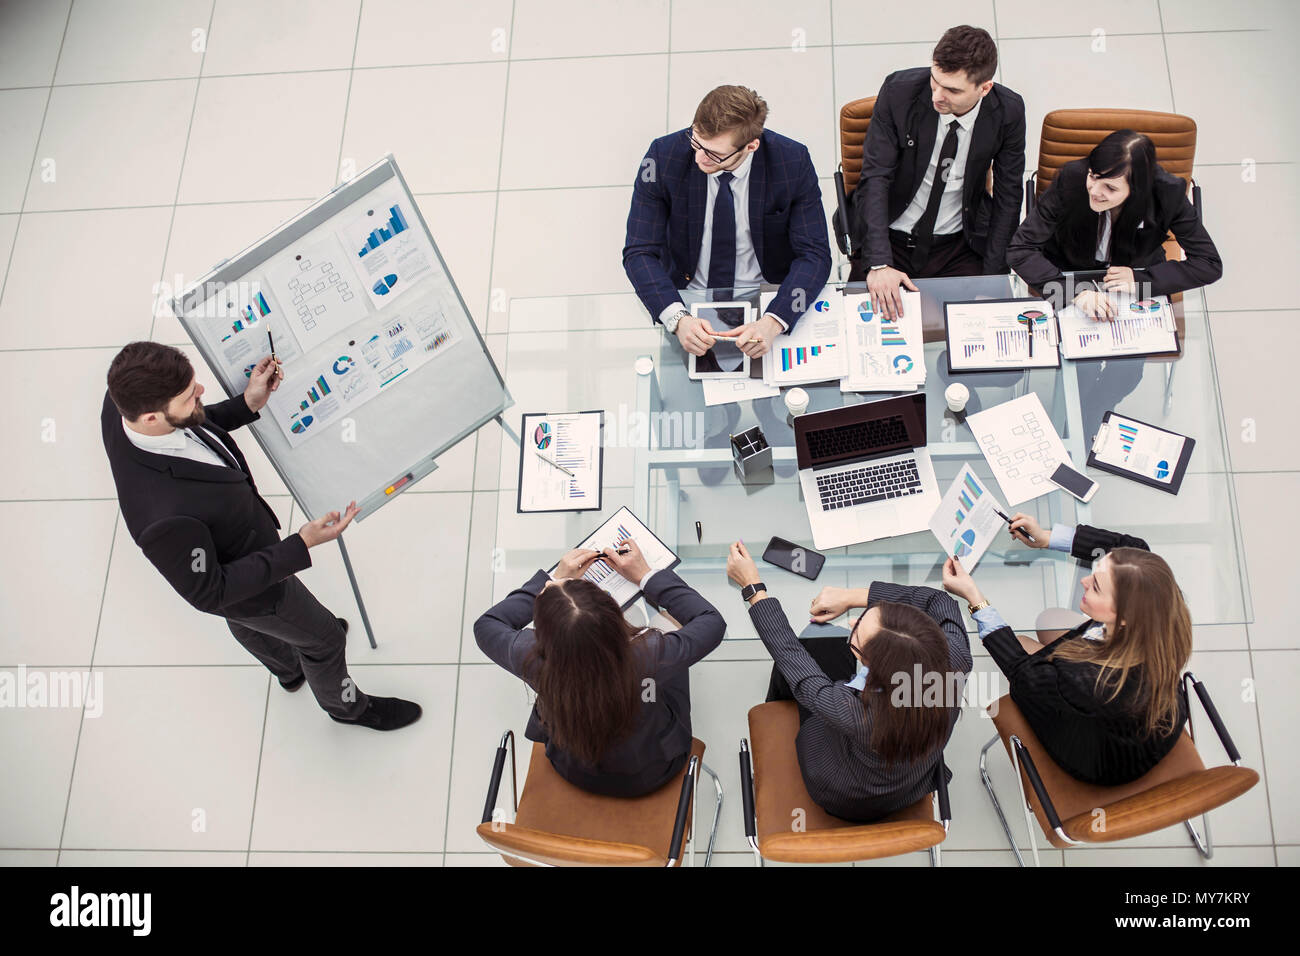 professional business team at presentation of new project in the office - Stock Image